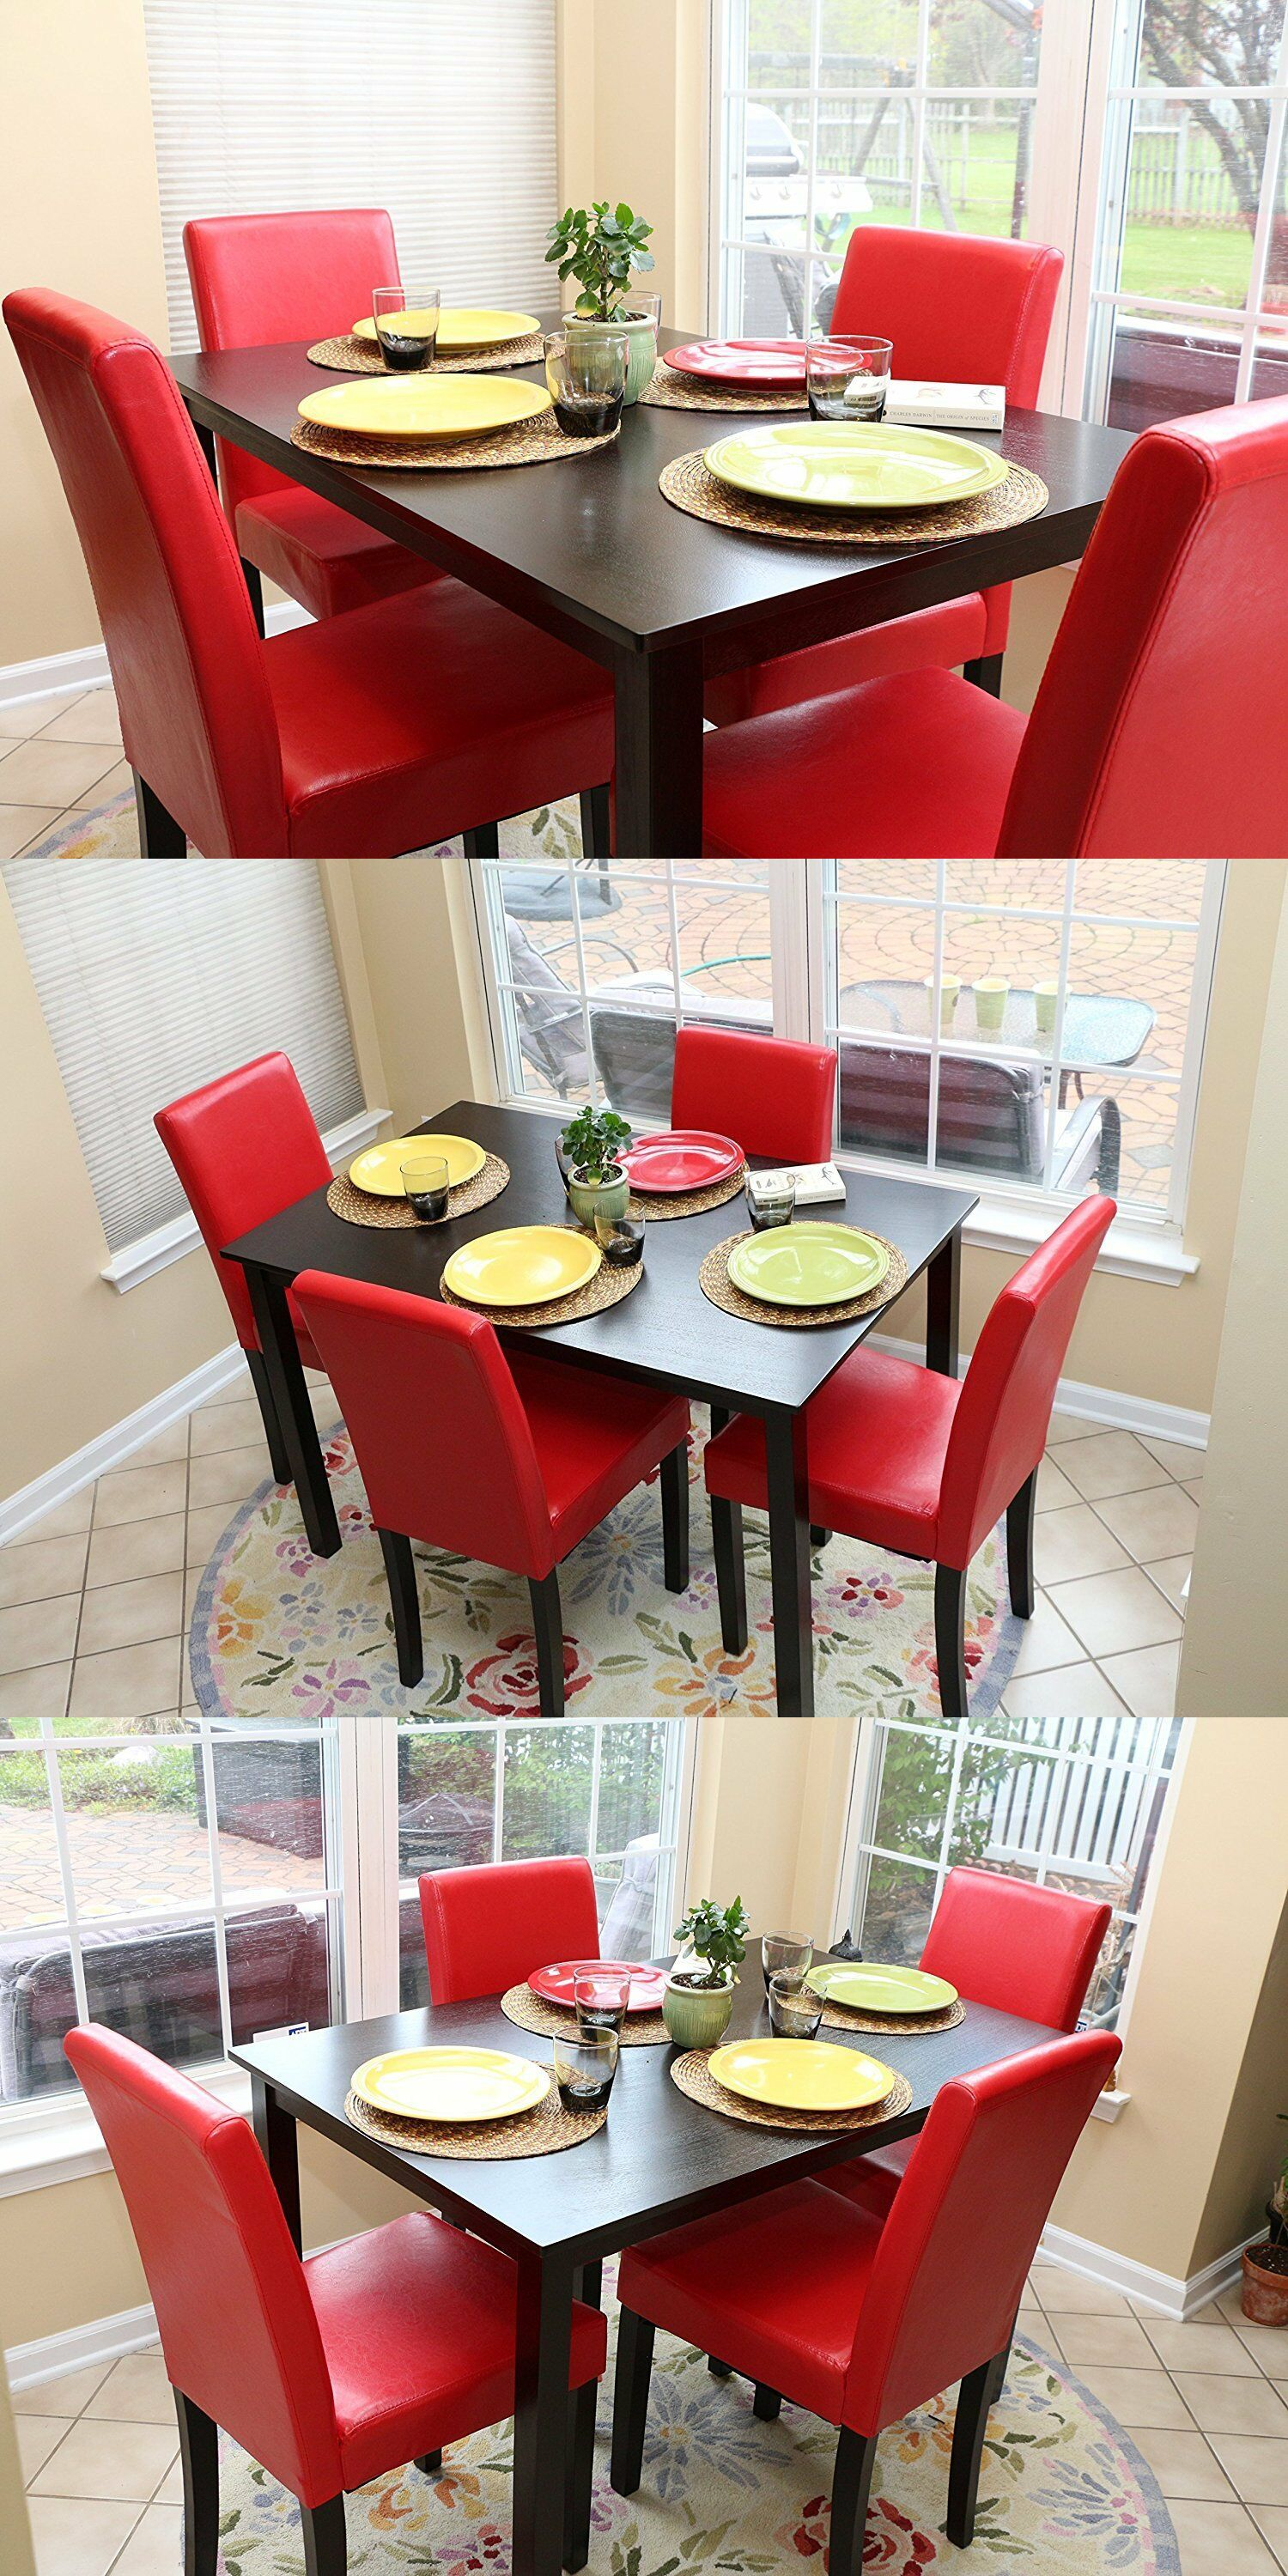 Dining Sets 107578 5 Pc Red Leather 4 Person Table And Chairs Red Dining Dinette Buy It Now Only Dining Table Setting Formal Dining Tables Table And Chairs